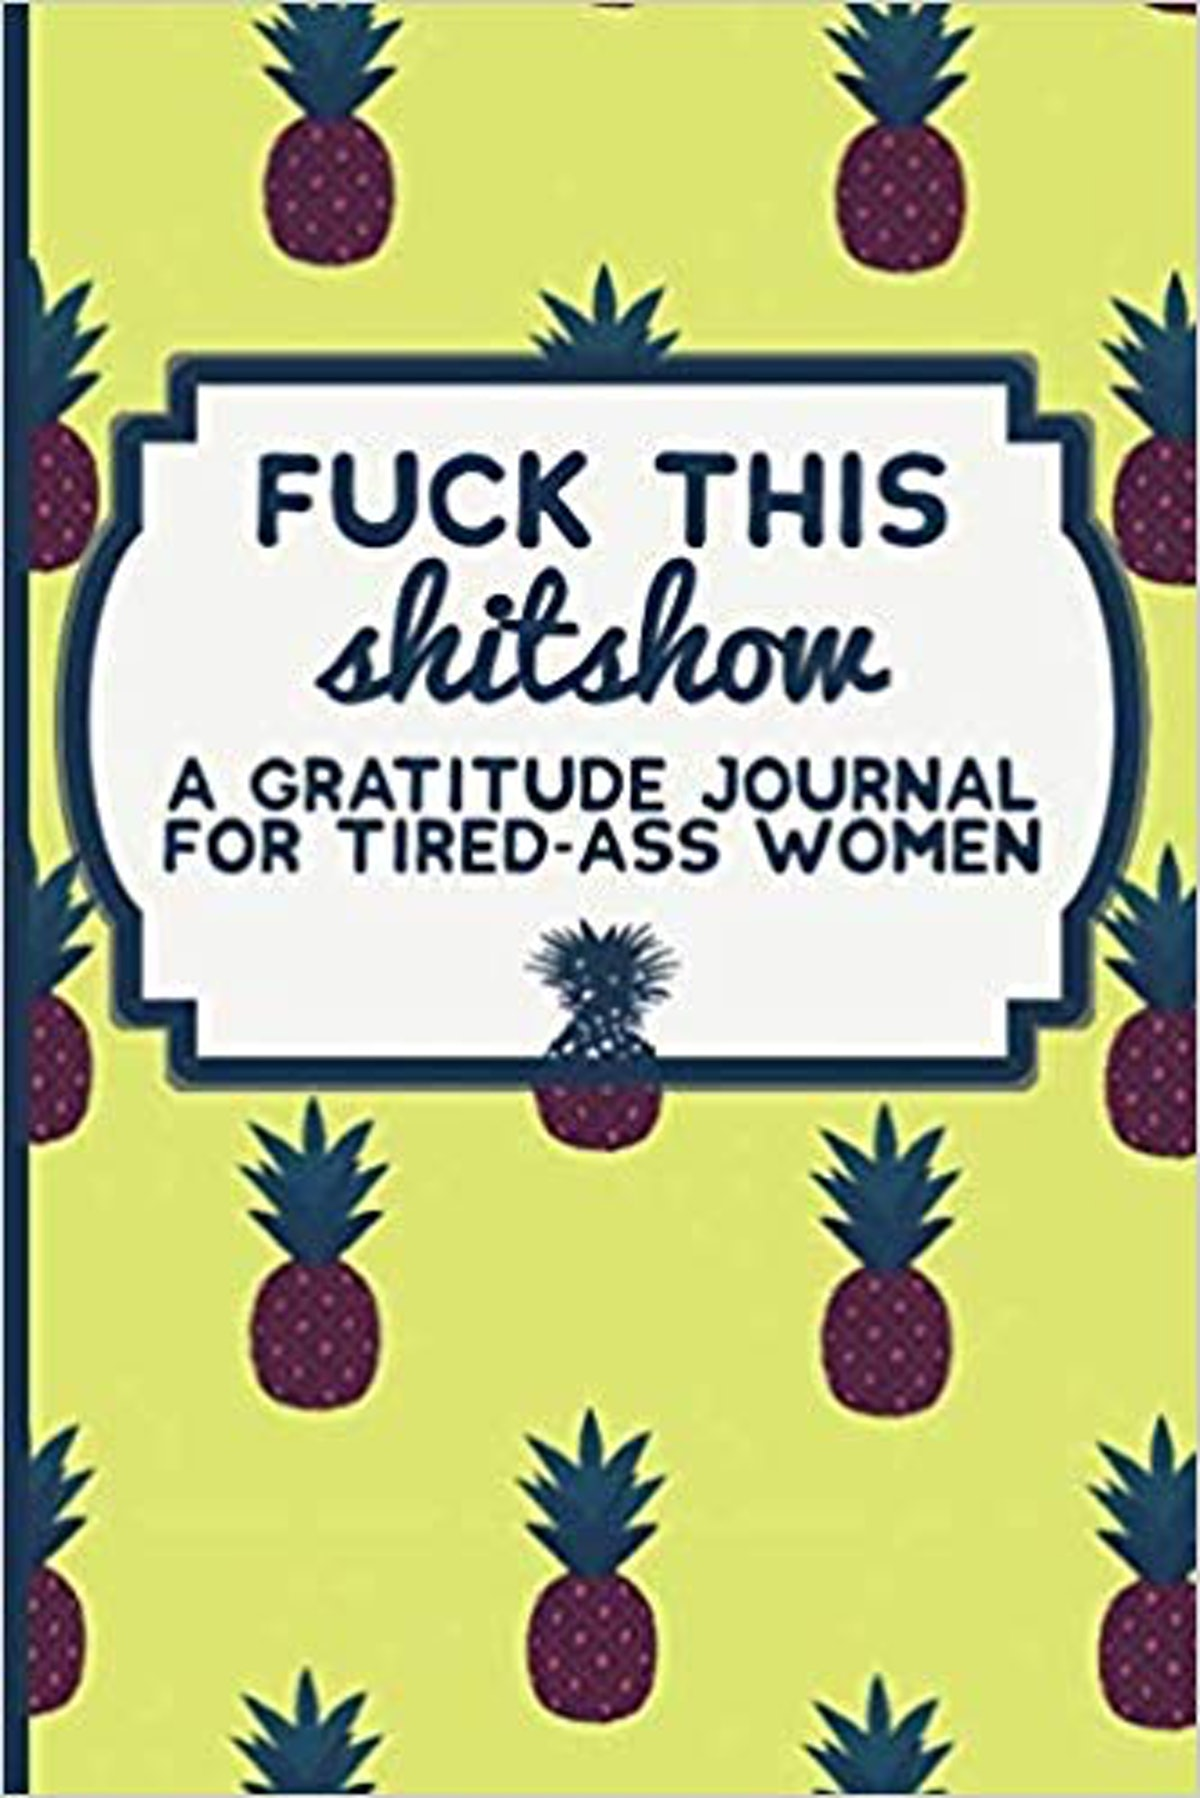 Fuck This Shitshow: A Gratitude Journal For Tired-Ass Women